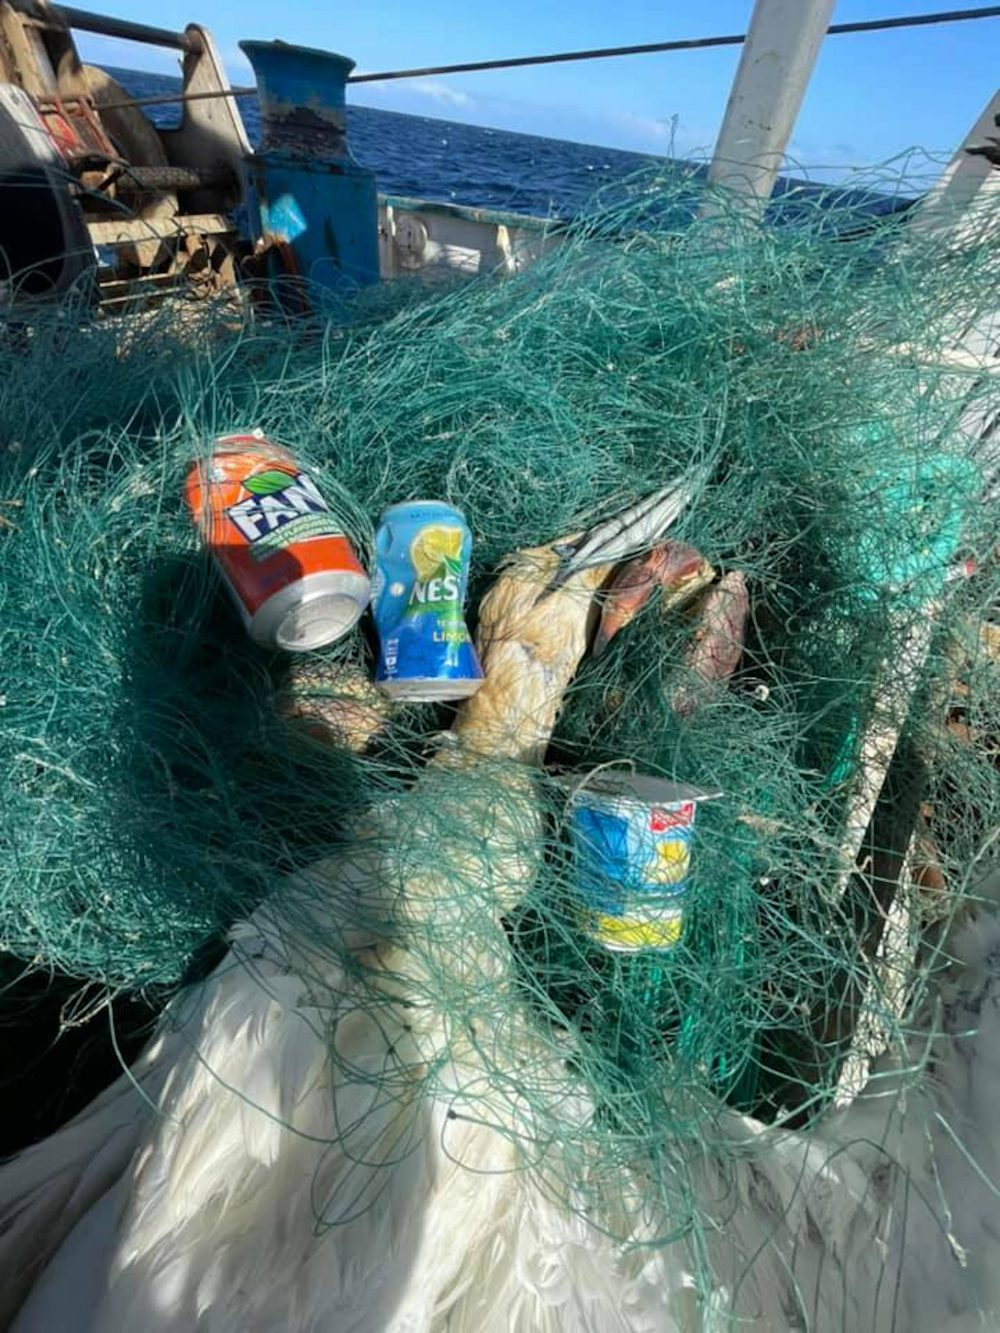 The Dead Gannet Tangled in Green Fishing wire   Scottish Wildlife News